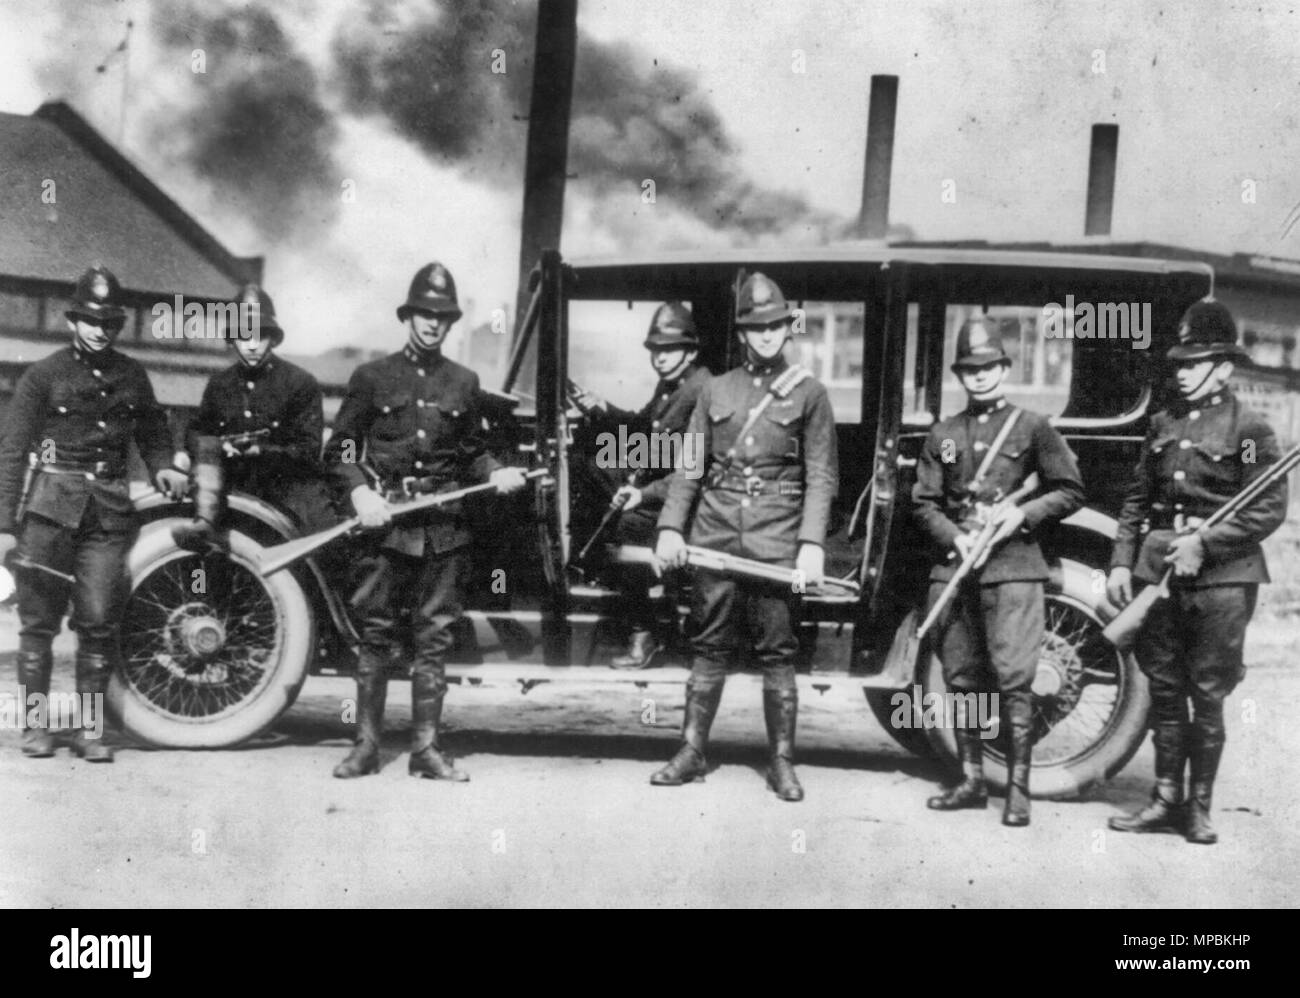 Latest news from the steel district - State troopers ready for a hurry call at Farrell, Pennsylvania - Seven posed with riot guns. 1919 - Stock Image